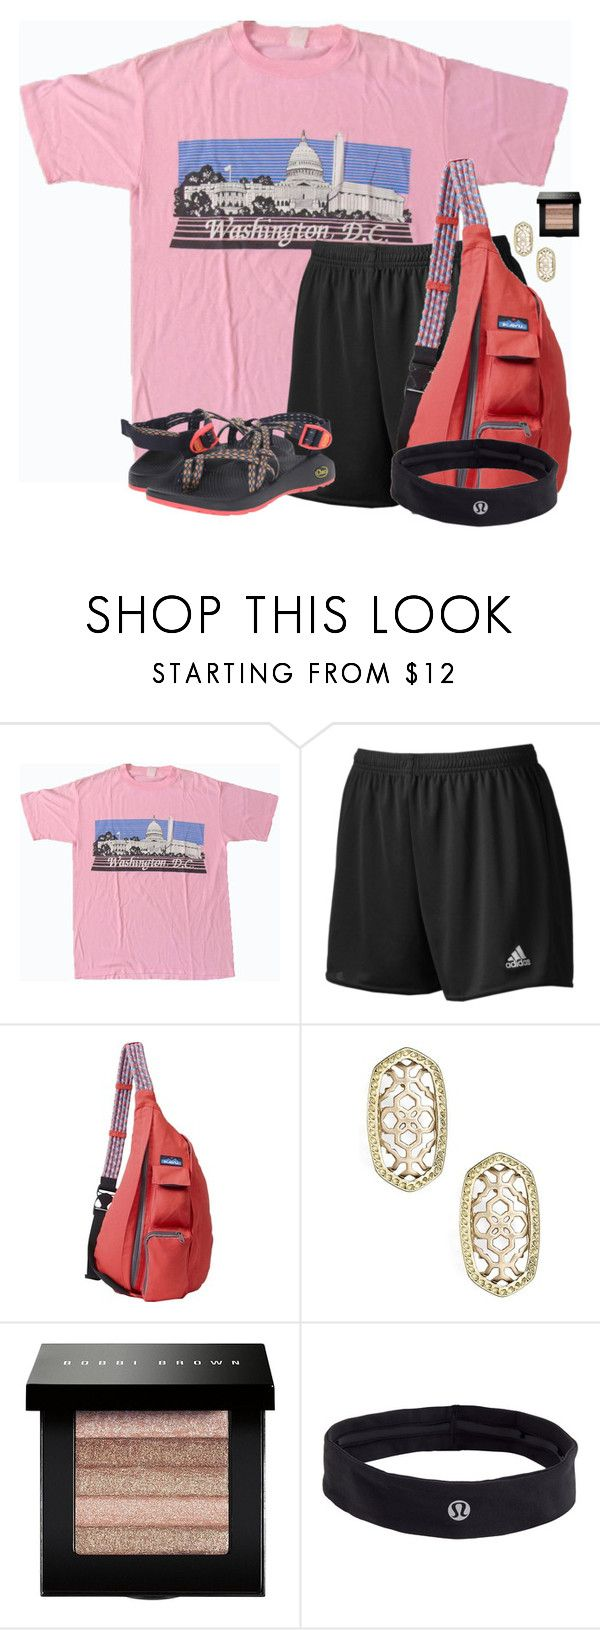 """3 months until Summer Camp!!! So excited!!"" by flroasburn ❤ liked on Polyvore featuring adidas, Kavu, Kendra Scott, Bobbi Brown Cosmetics, lululemon and Chaco"